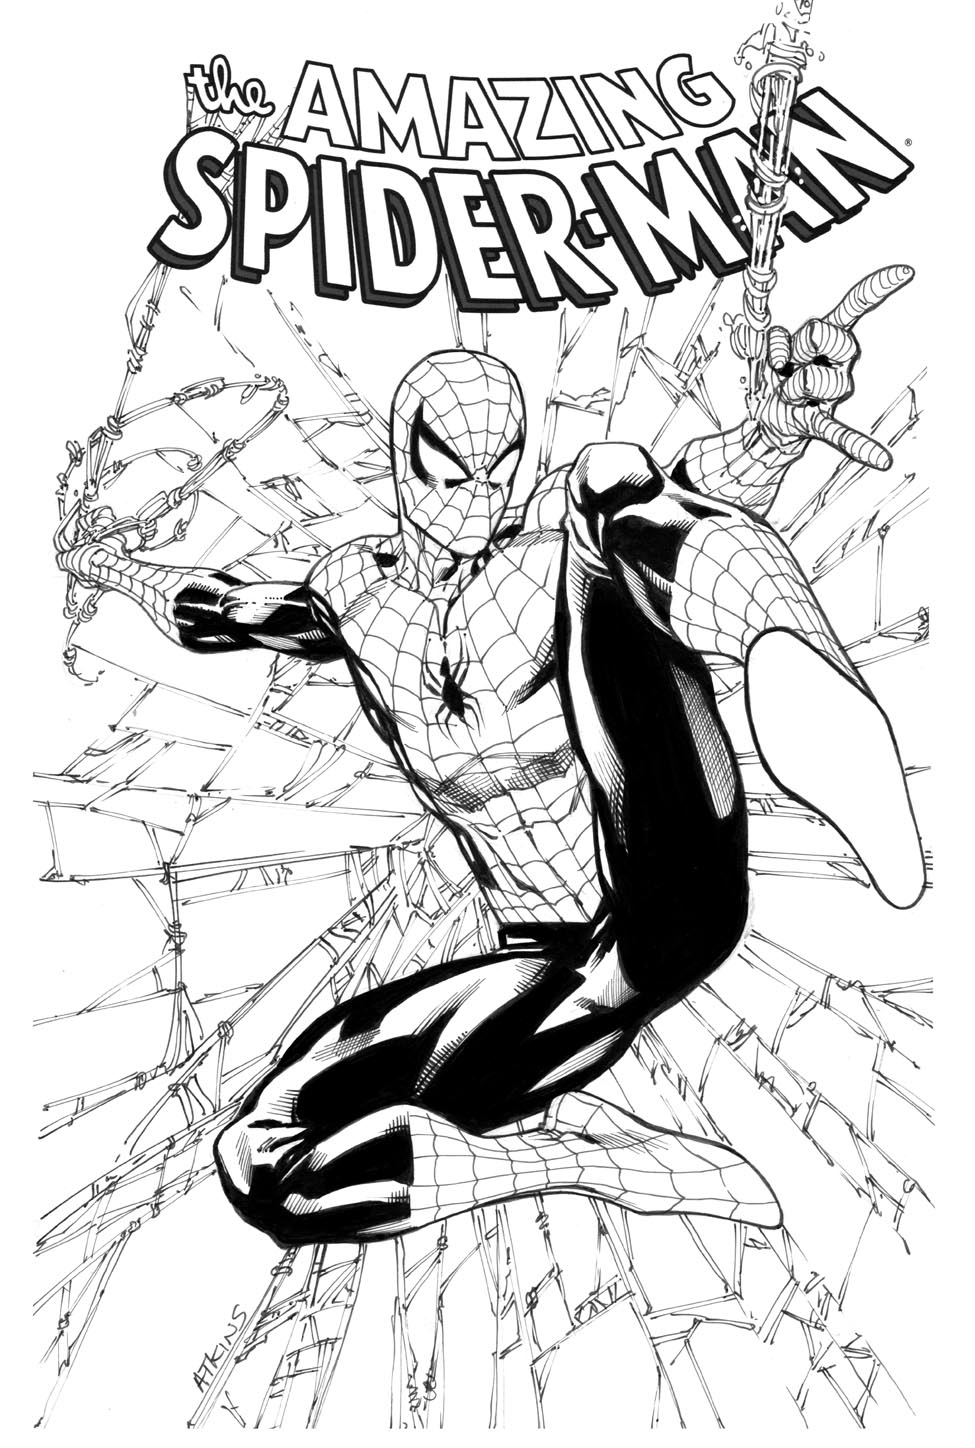 Comic Book Cover Black And White : Robert atkins art avengers april spiderman kind of